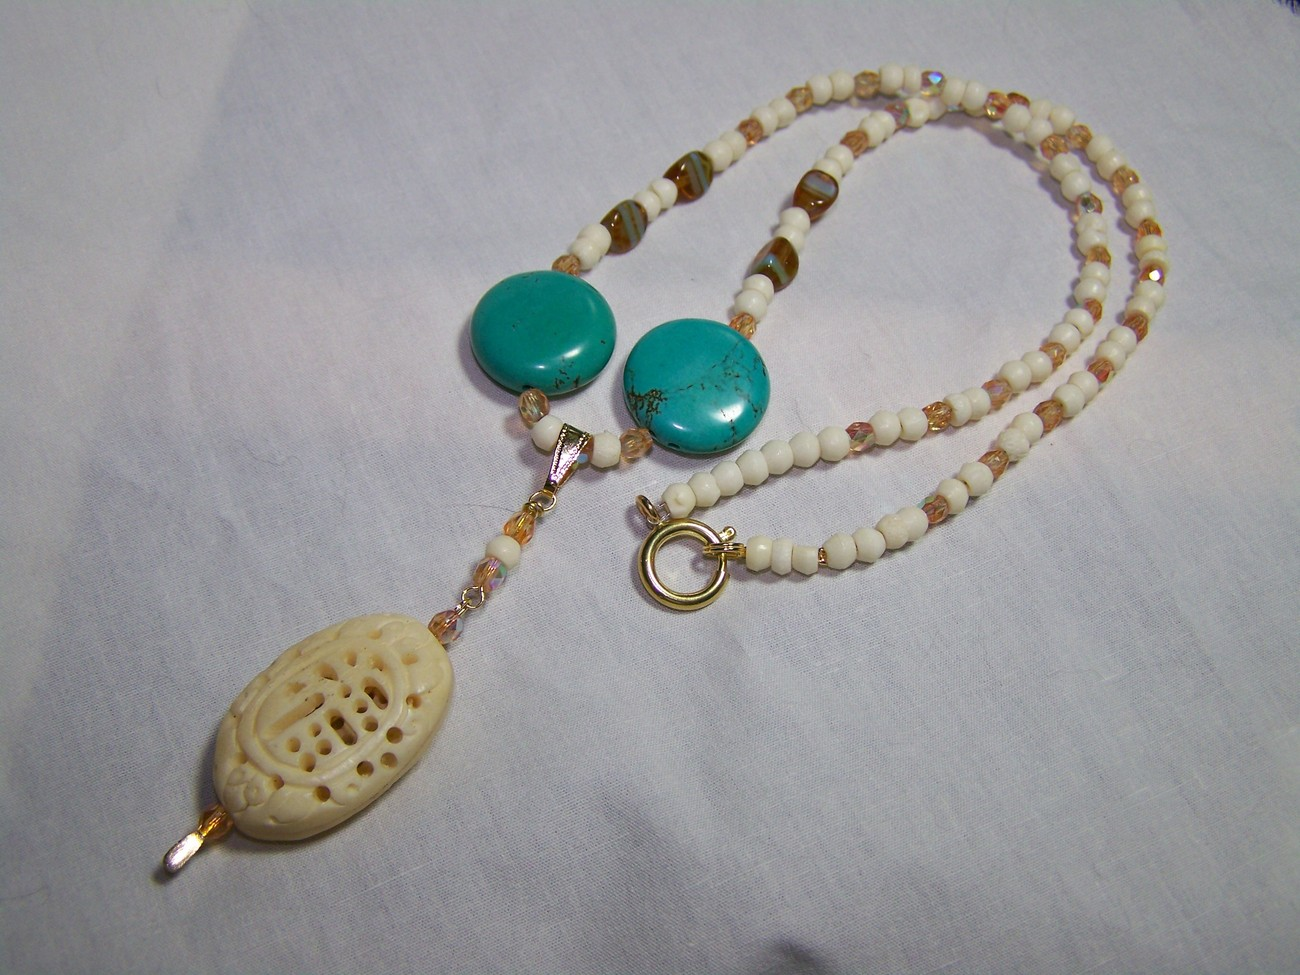 Bone turquoise glass 19 1/2 inch carved pendant necklace